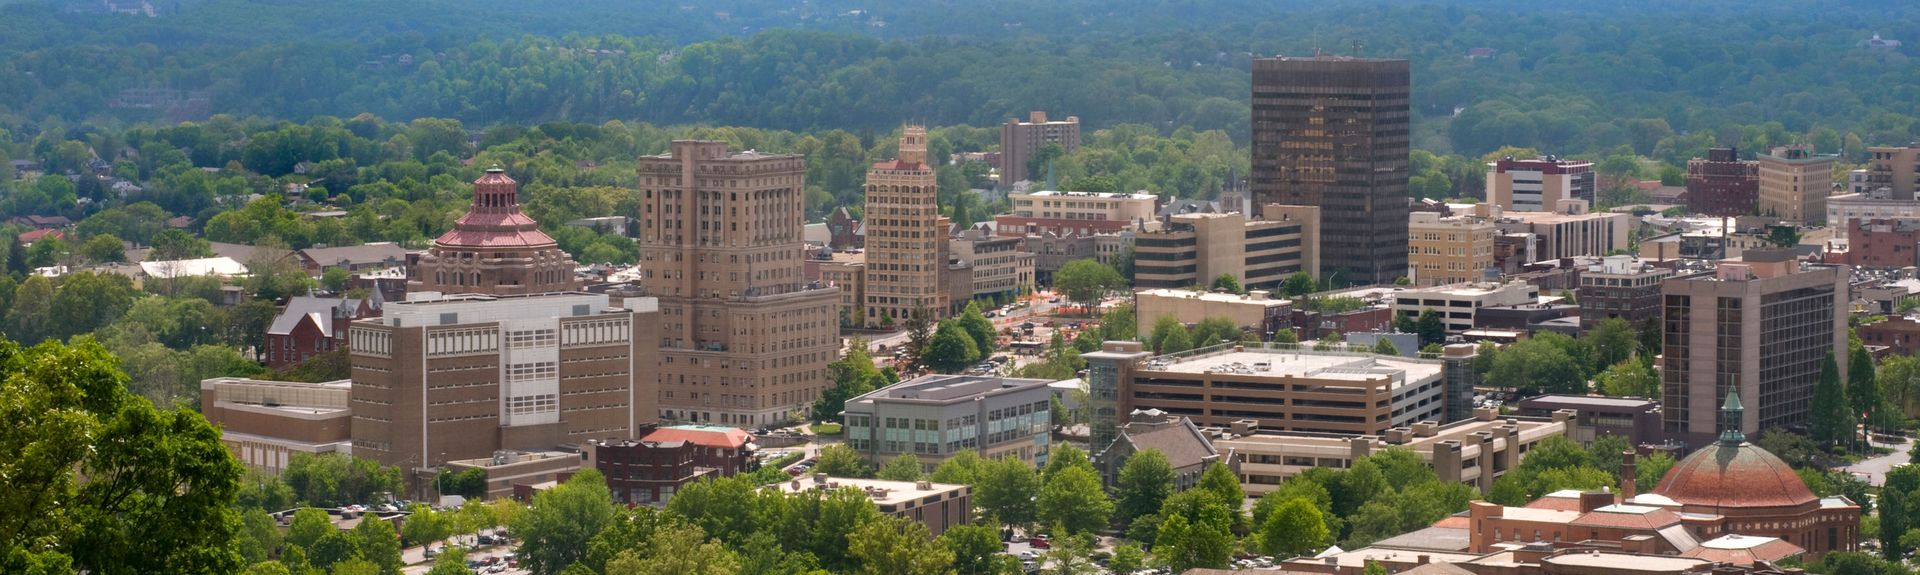 Asheville, North Carolina, United States of America